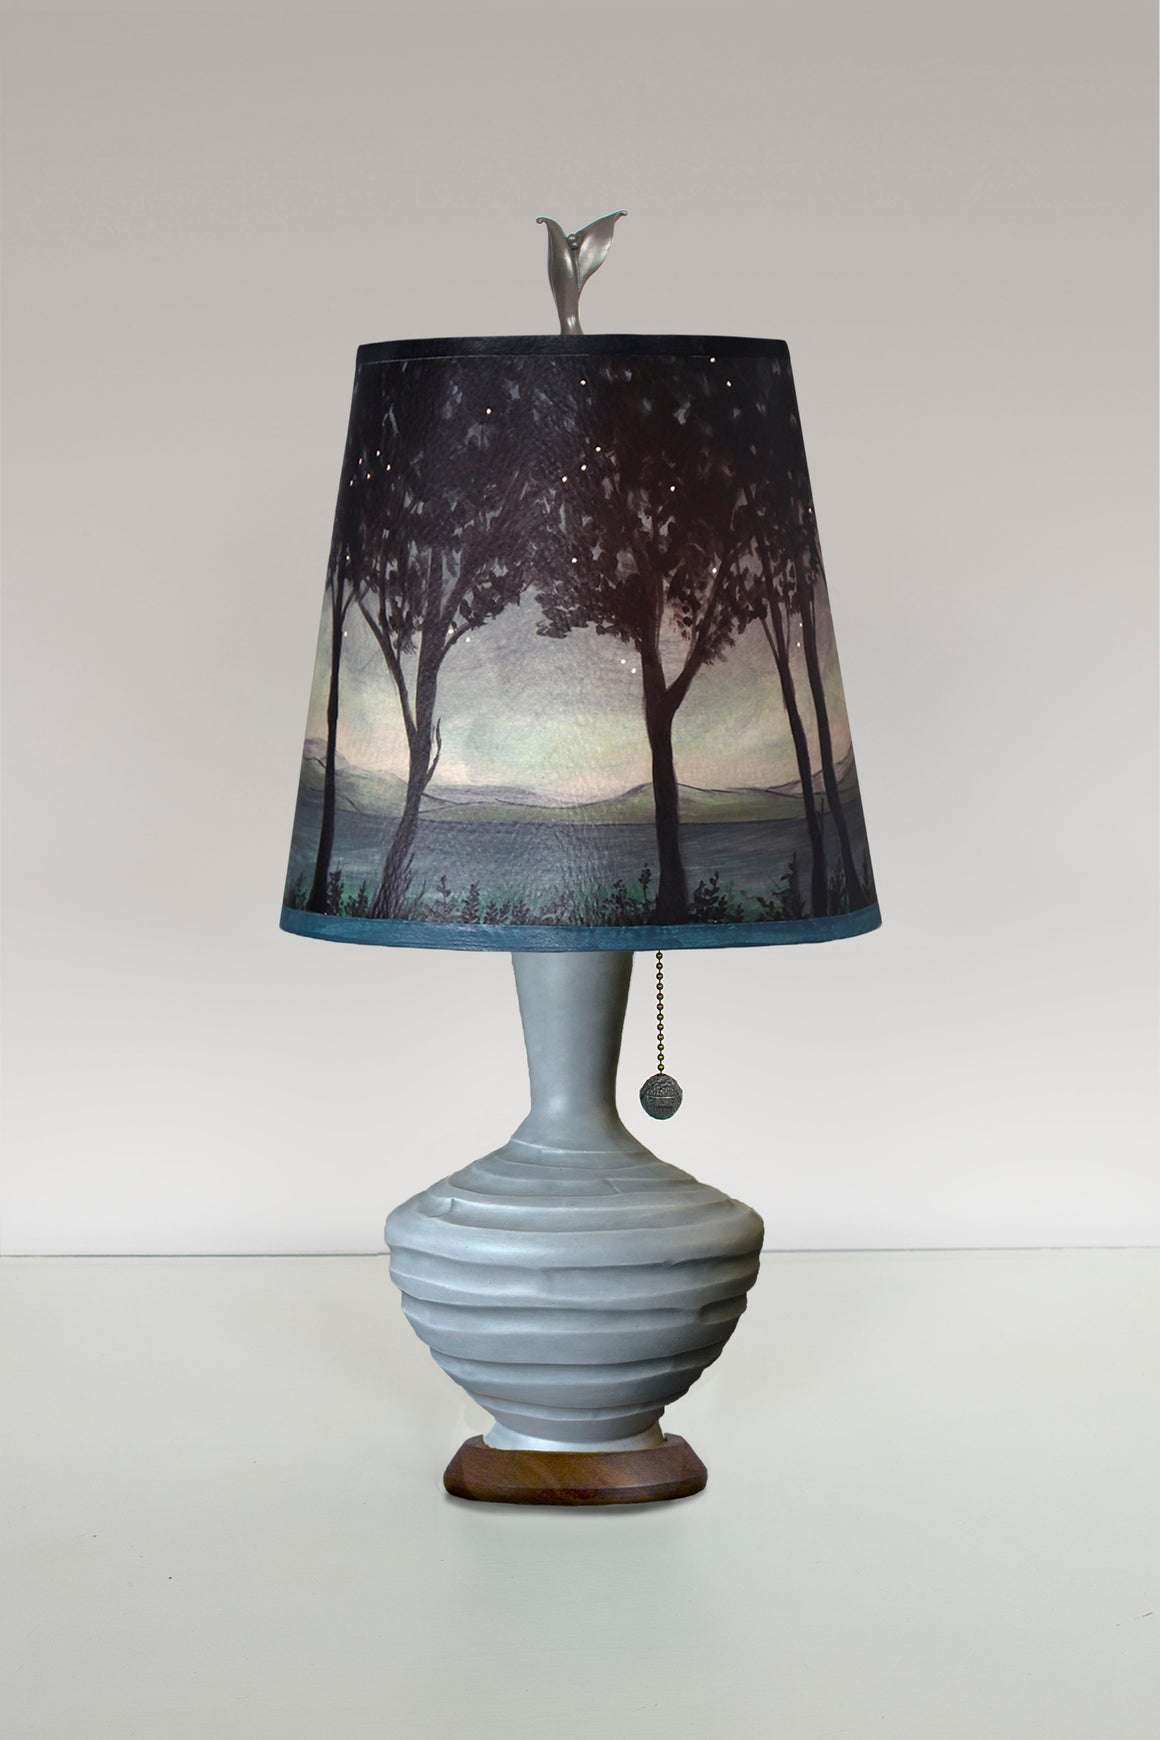 Dove Grey Ceramic Table Lamp with Small Drum Shade in Twilight